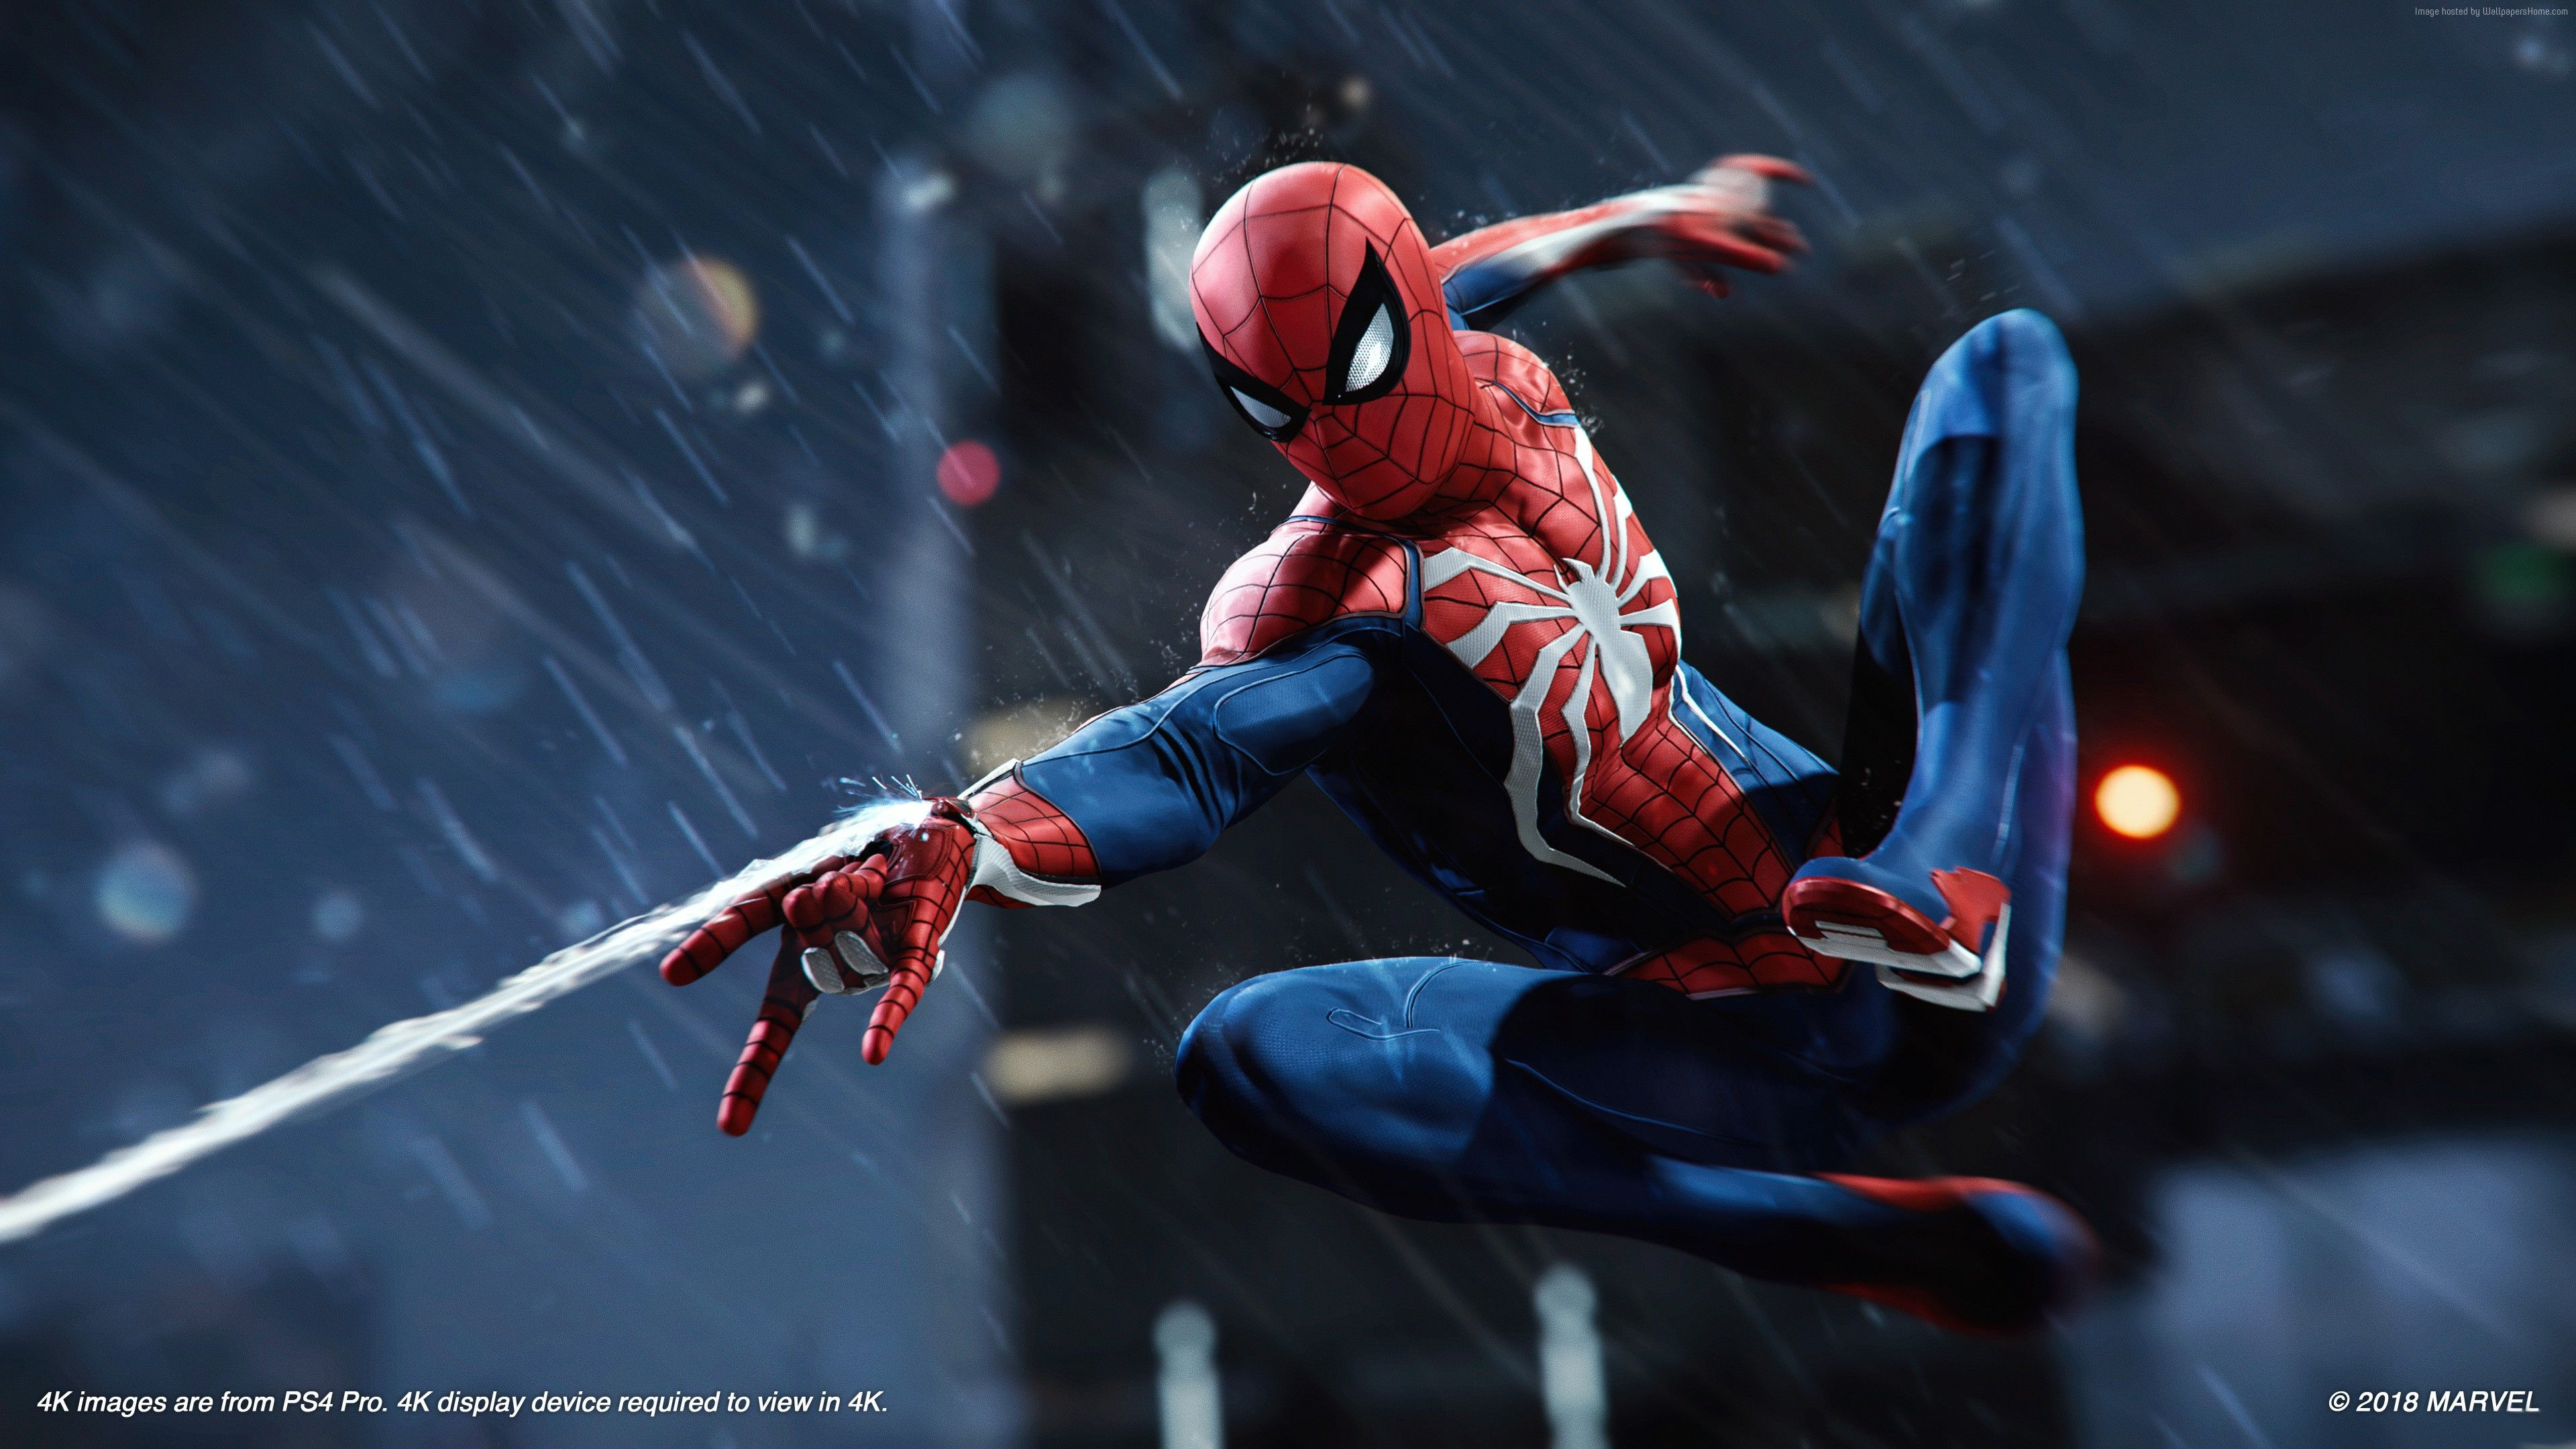 Pin By Pinkie Hayley On Gaming Spiderman Spider Man Playstation Spider Man Playstation 4